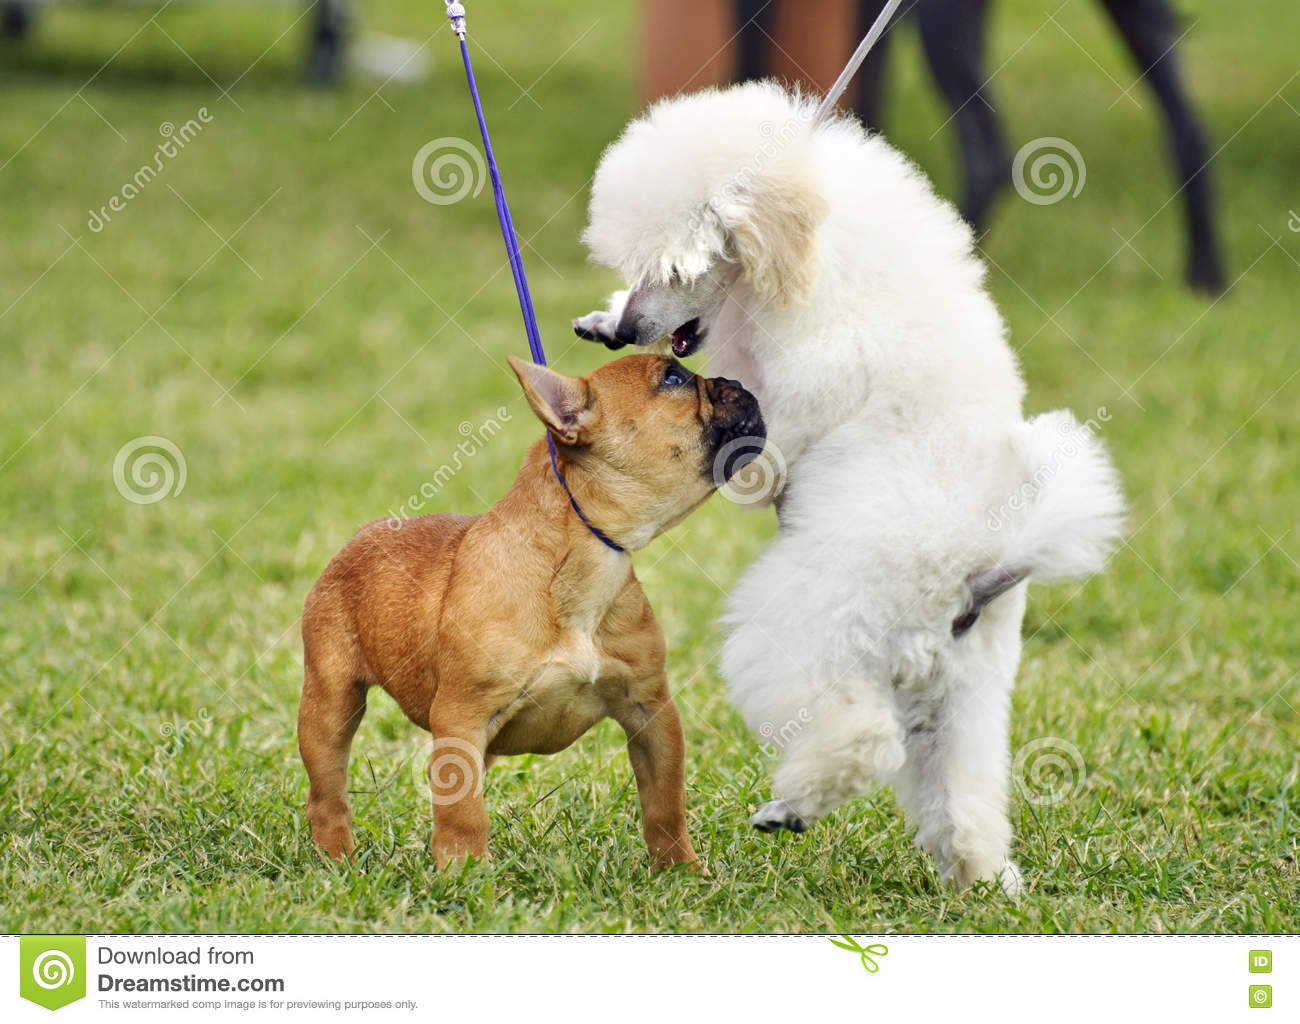 Baby French Bulldog Toy Poodle Puppies Socializing Playing Dog Show Stock Image Image Of Animals Friend 77971305